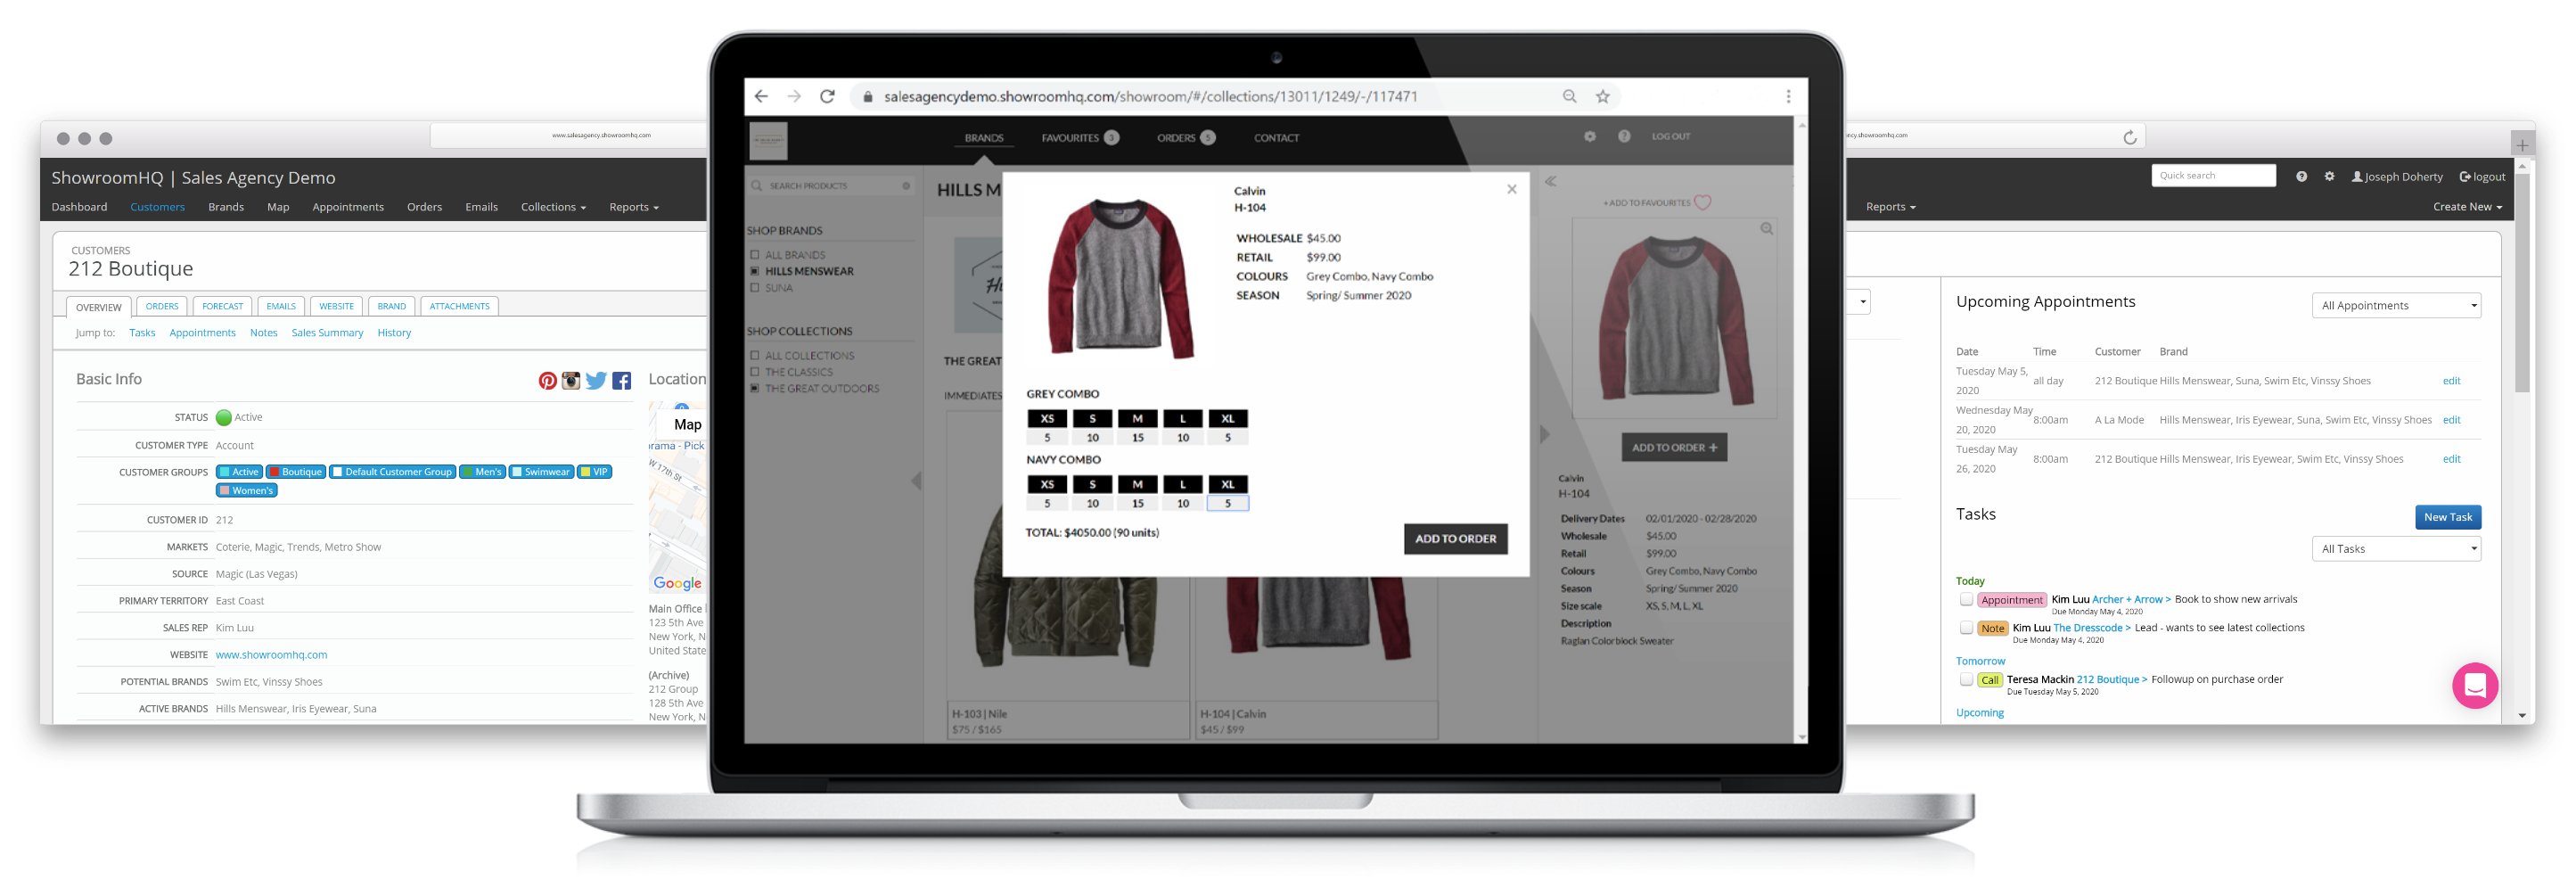 CRM Clothing Industry - Wholesale Apparel Software